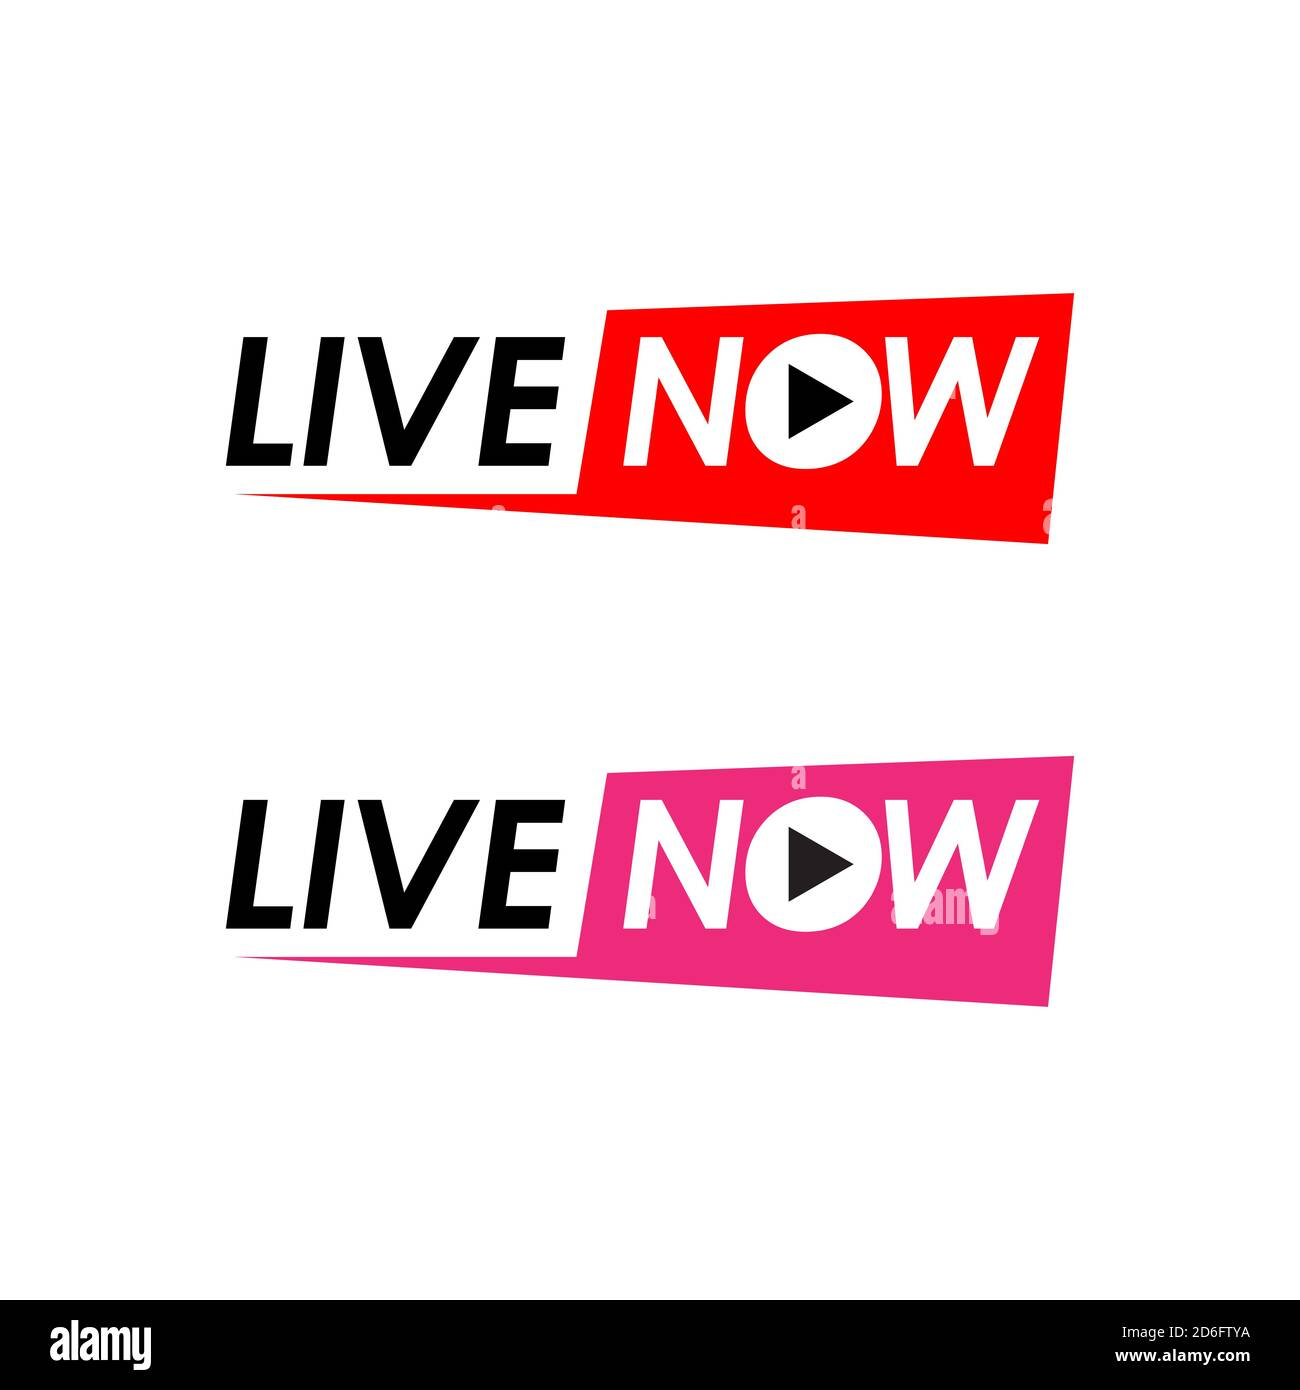 live now logo icon for TV News Entertaining show online sign banner vector  illustration Stock Vector Image & Art - Alamy